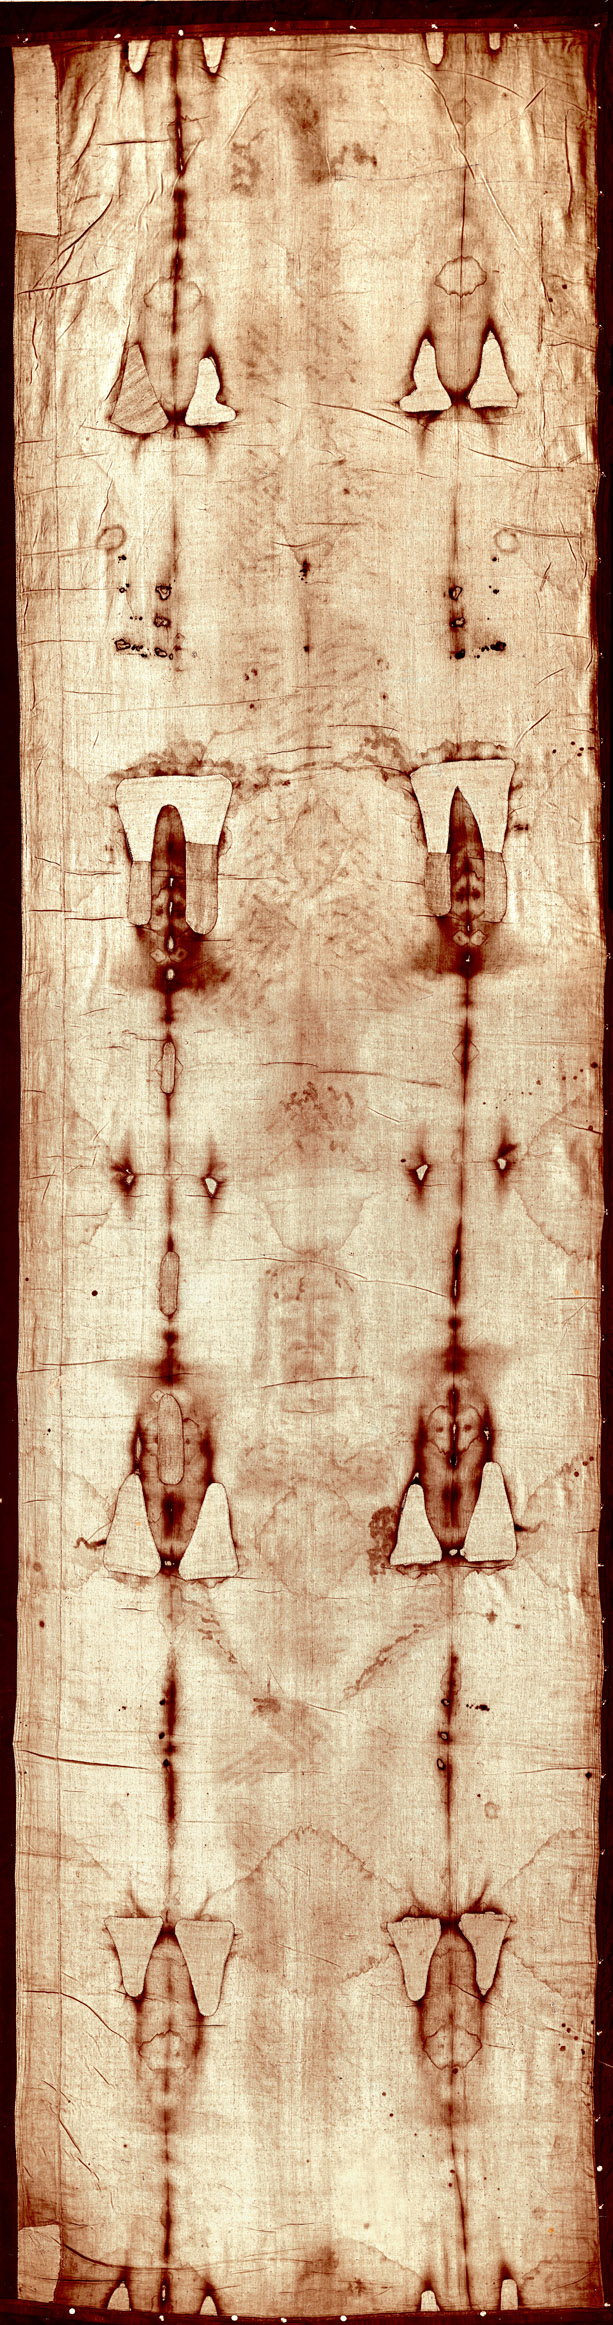 Shroud of Turin.